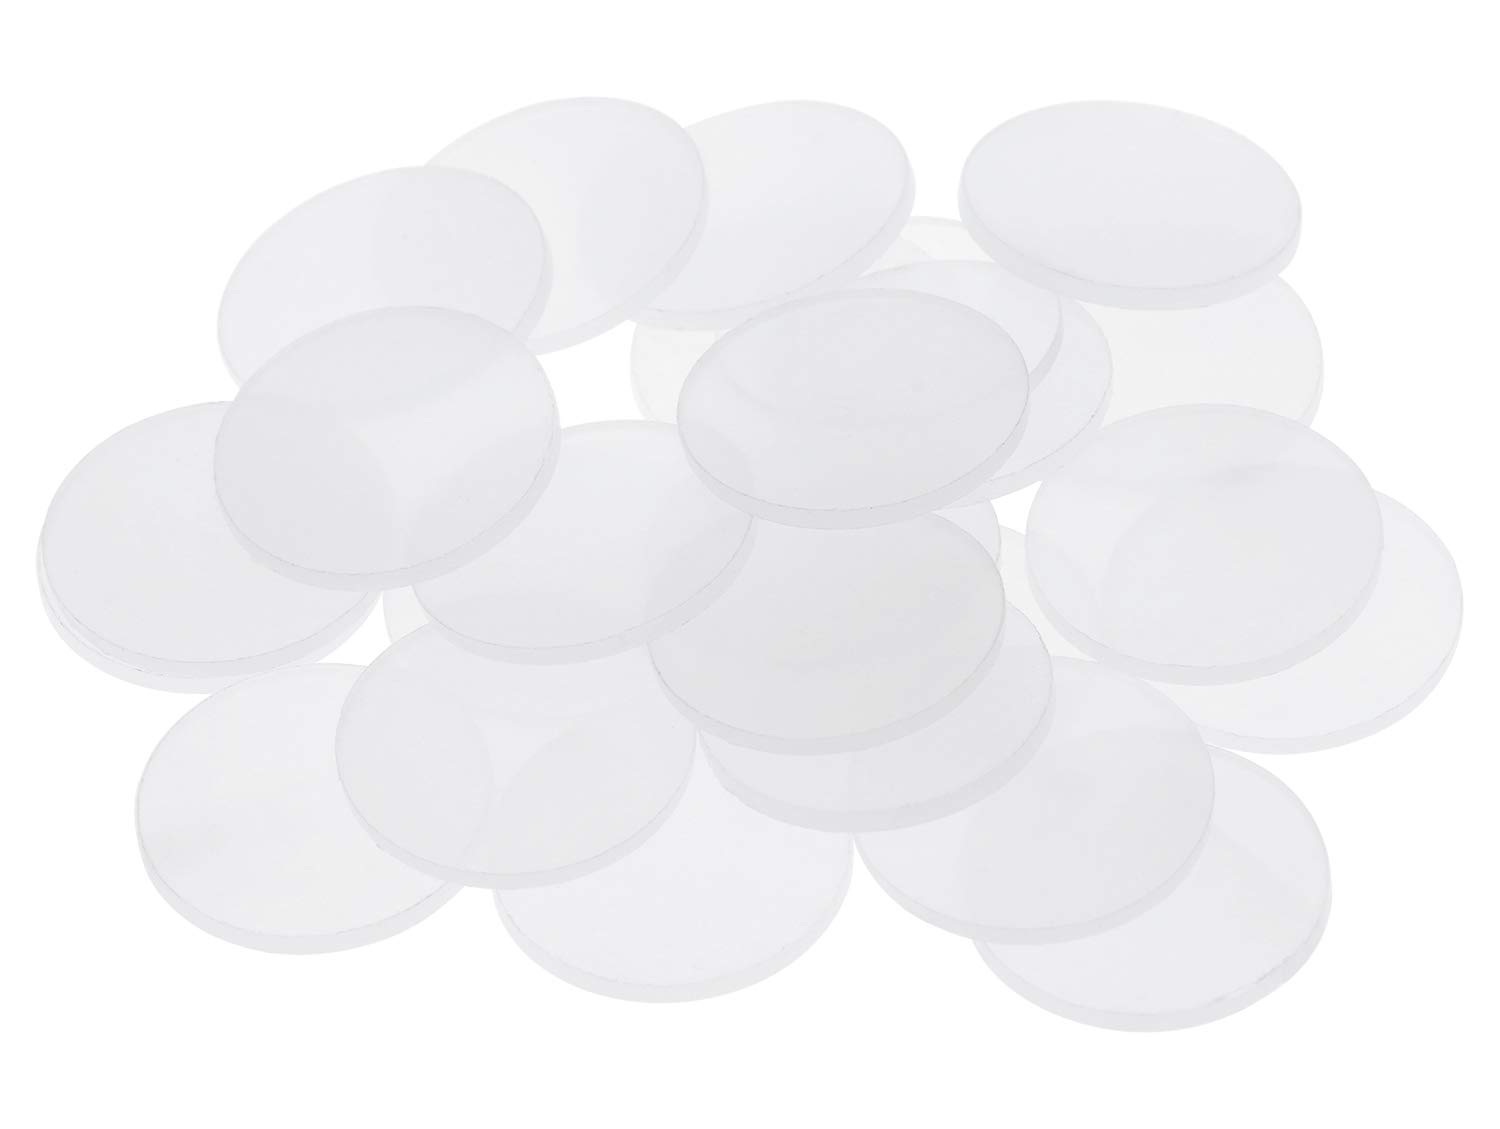 Tupalizy 1 Inch Clear Circular Acrylic Game Accessories Miniature Bases Flat Discs Counter Markers for Miniature Stands, Tabletop Decor, , Terrain Building and Cake Decoration, 1.8mm Thick, 25 Pack